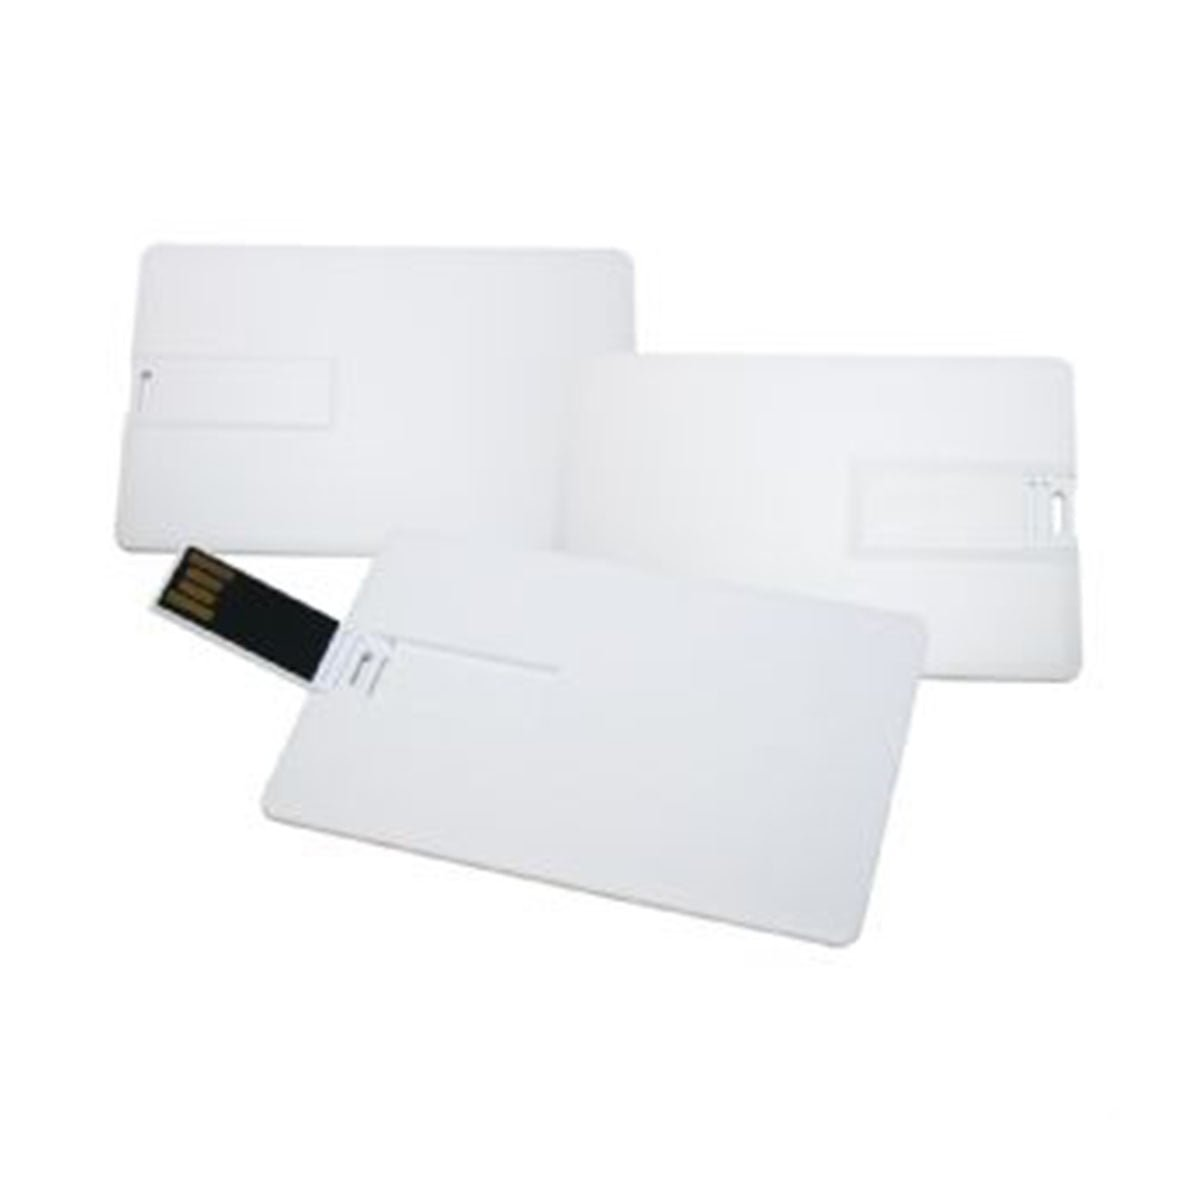 Super Slim Credit Card USB-White.